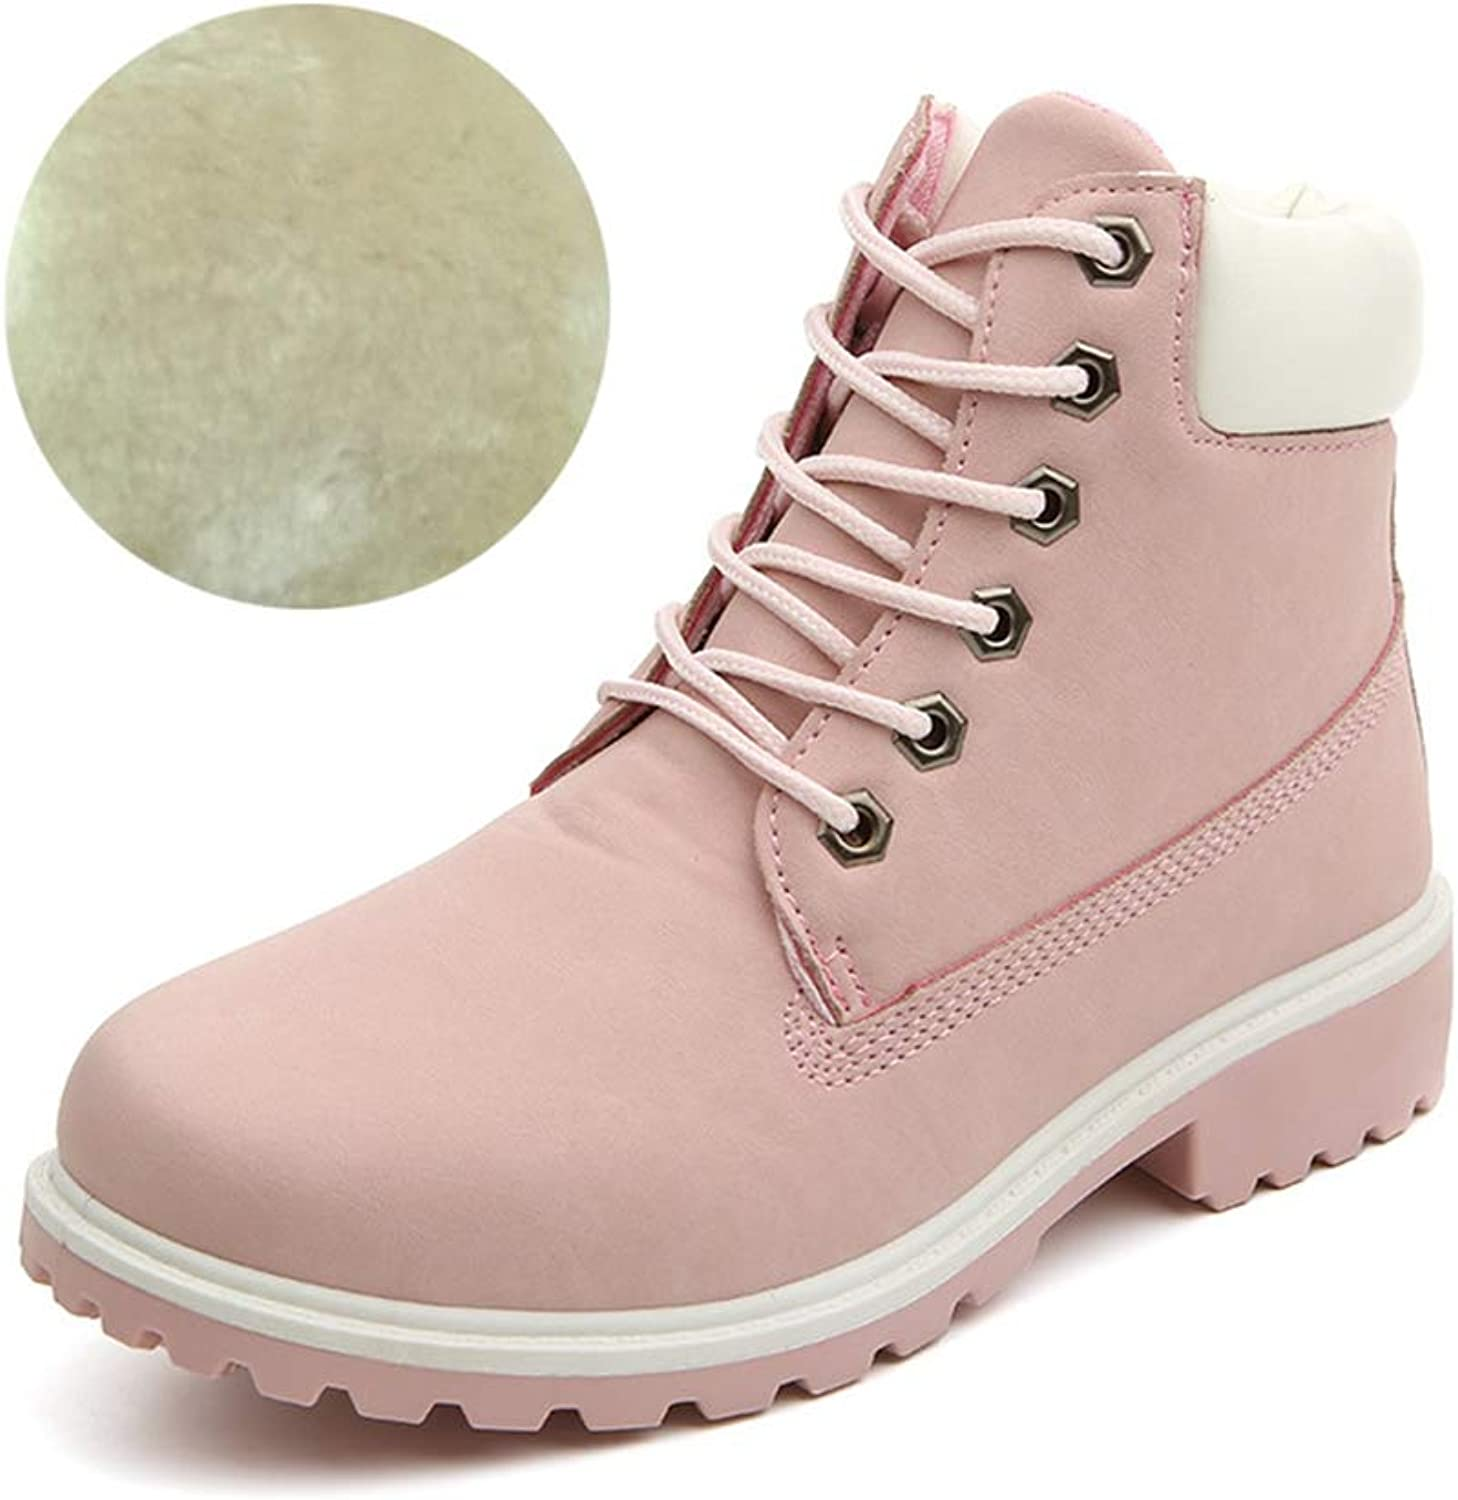 Women's Warm Ankle Boots Comfortable Platform Winter Boots Rubber Non-Slip Lady Boots